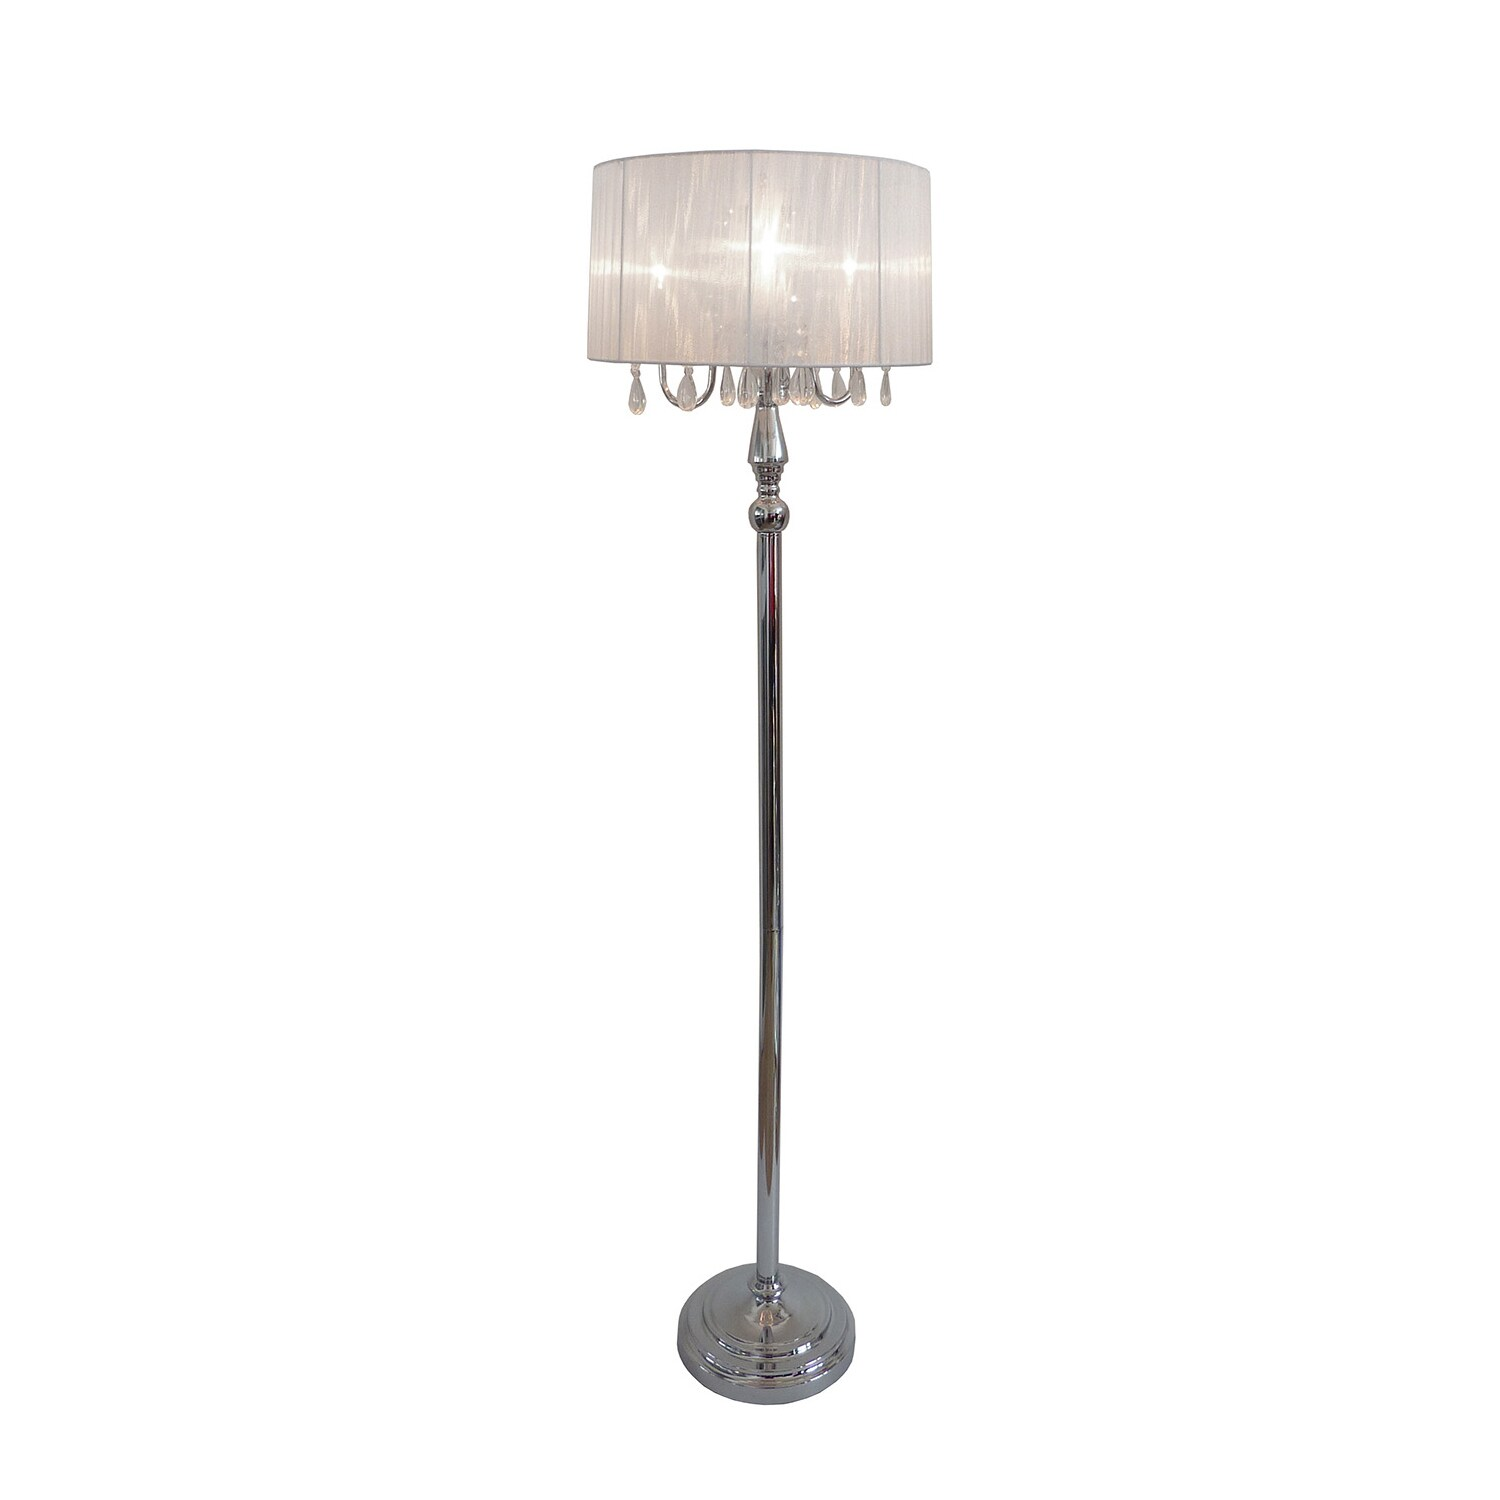 Elegant designs lf1002 wht sheer shade chrome floor lamp with picture 5 of 8 aloadofball Image collections